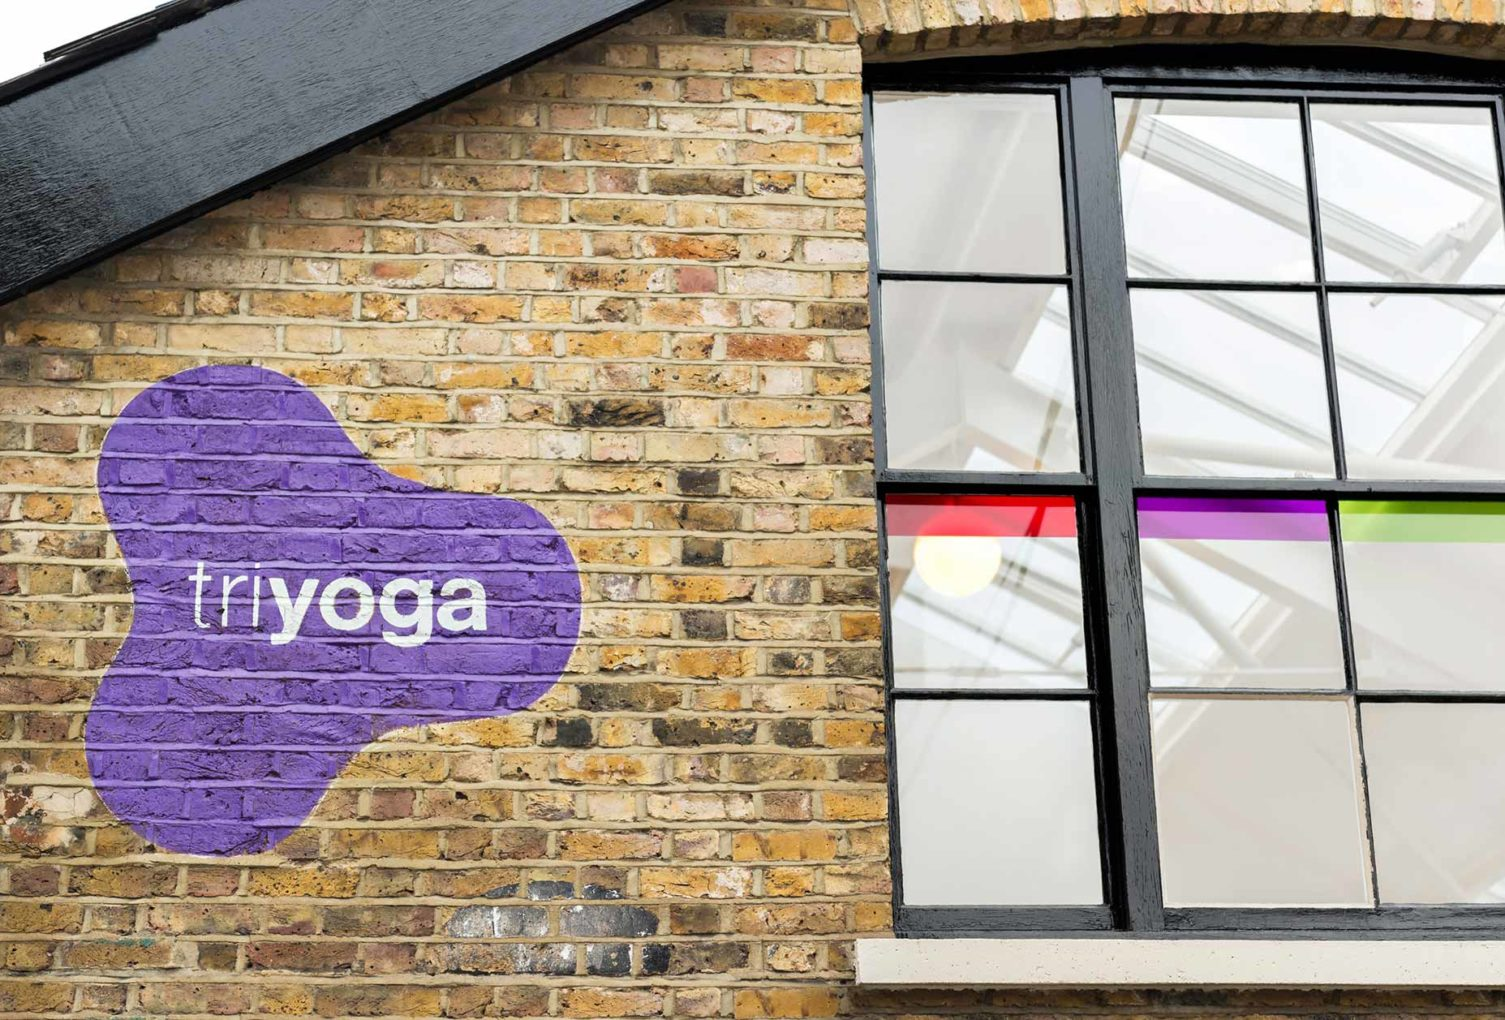 triyoga, 57 Jamestown Road, London, NW1 7DB  A beautiful renovated Victorian warehouse – originally a piano factory – with high ceilings, natural light and lots of space. Walking distance from Chalk Farm and Camden London Underground stations.